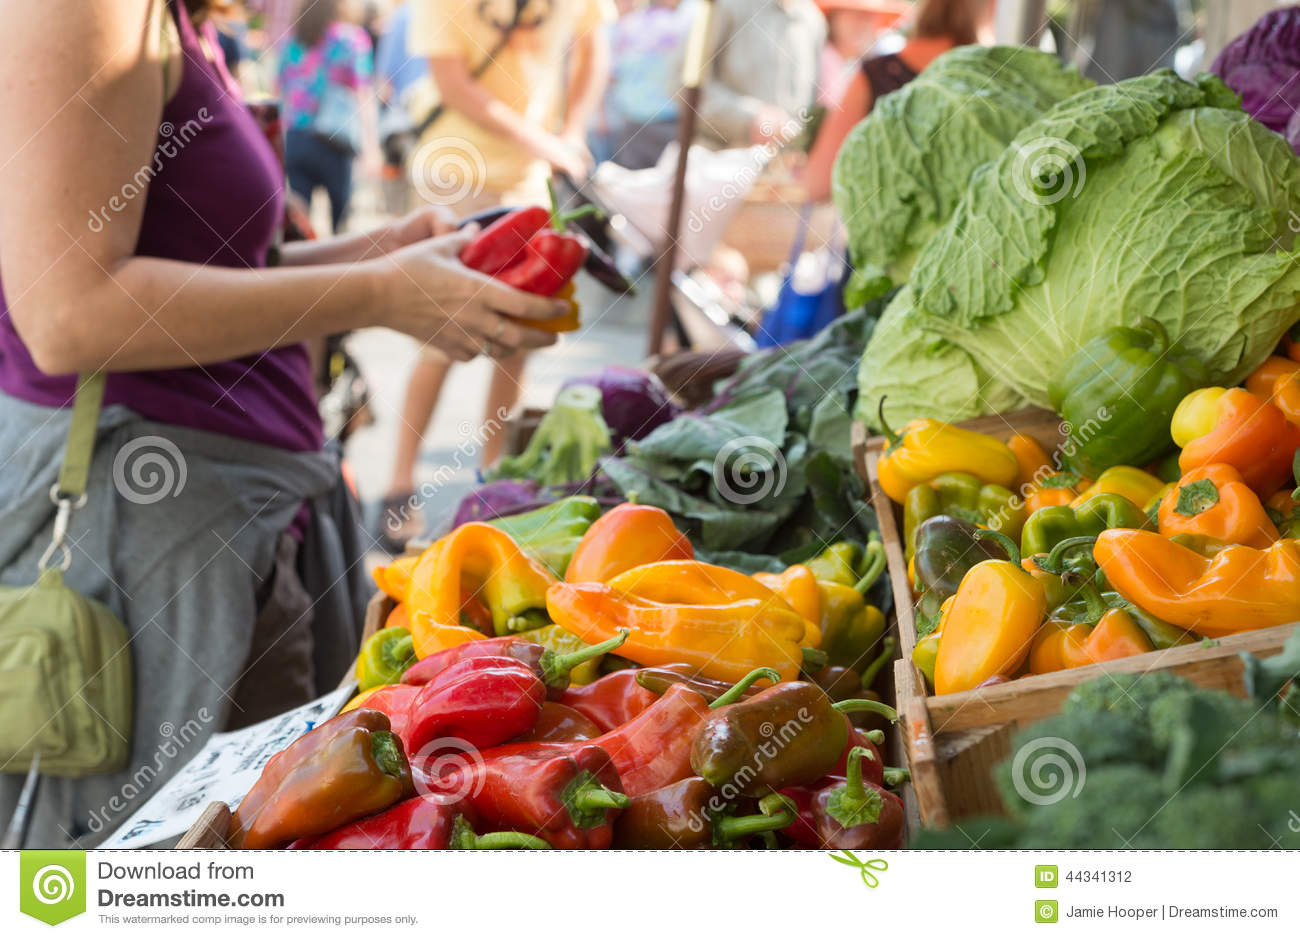 Shopping at the Farmers Market